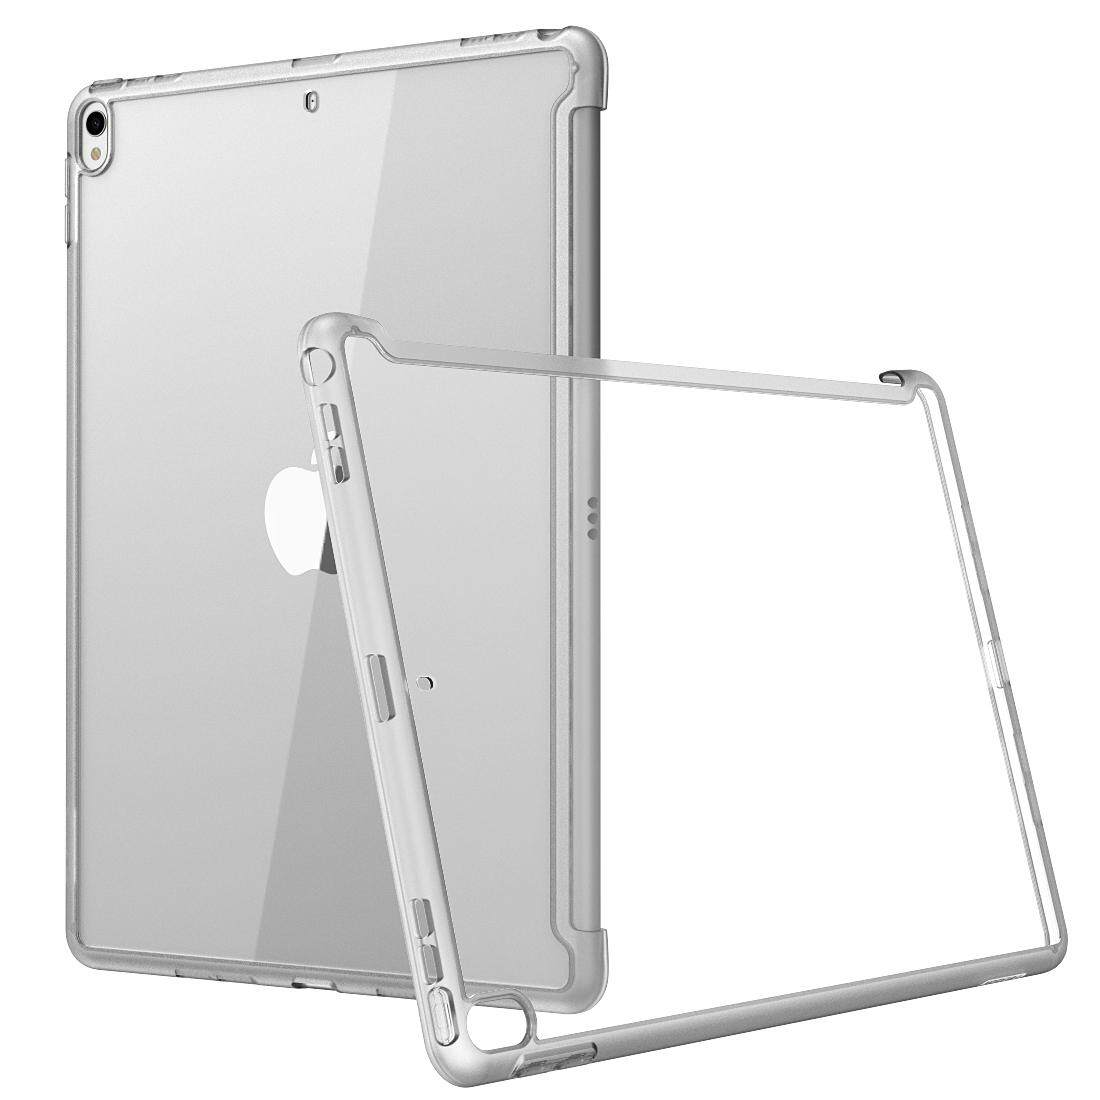 """For iPad Air 3 Case 10.5"""" 2019 (3rd Generation), iPad Pro 10.5"""